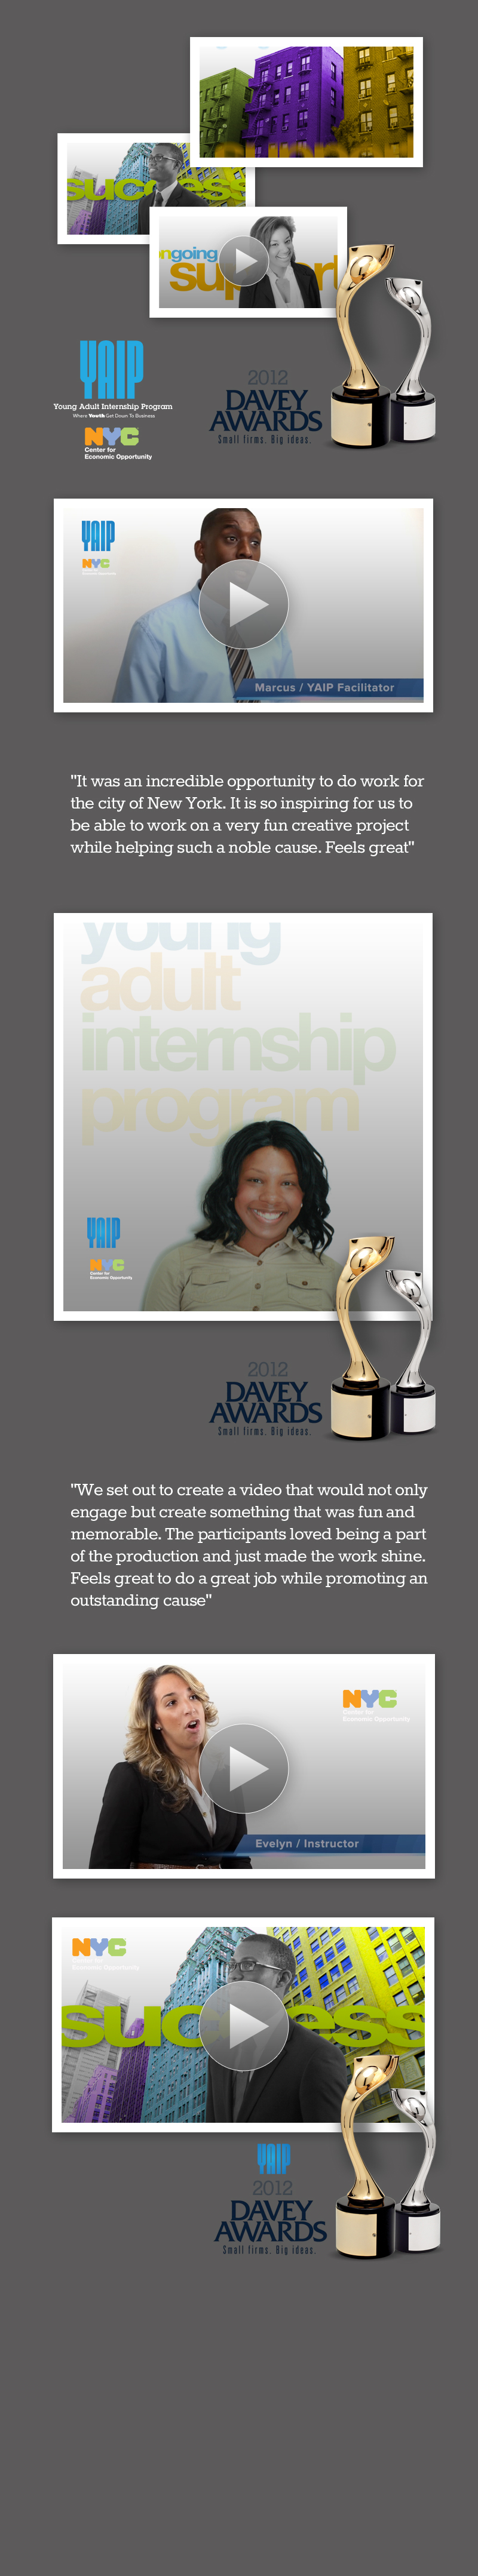 Winner 2012 Davey Award